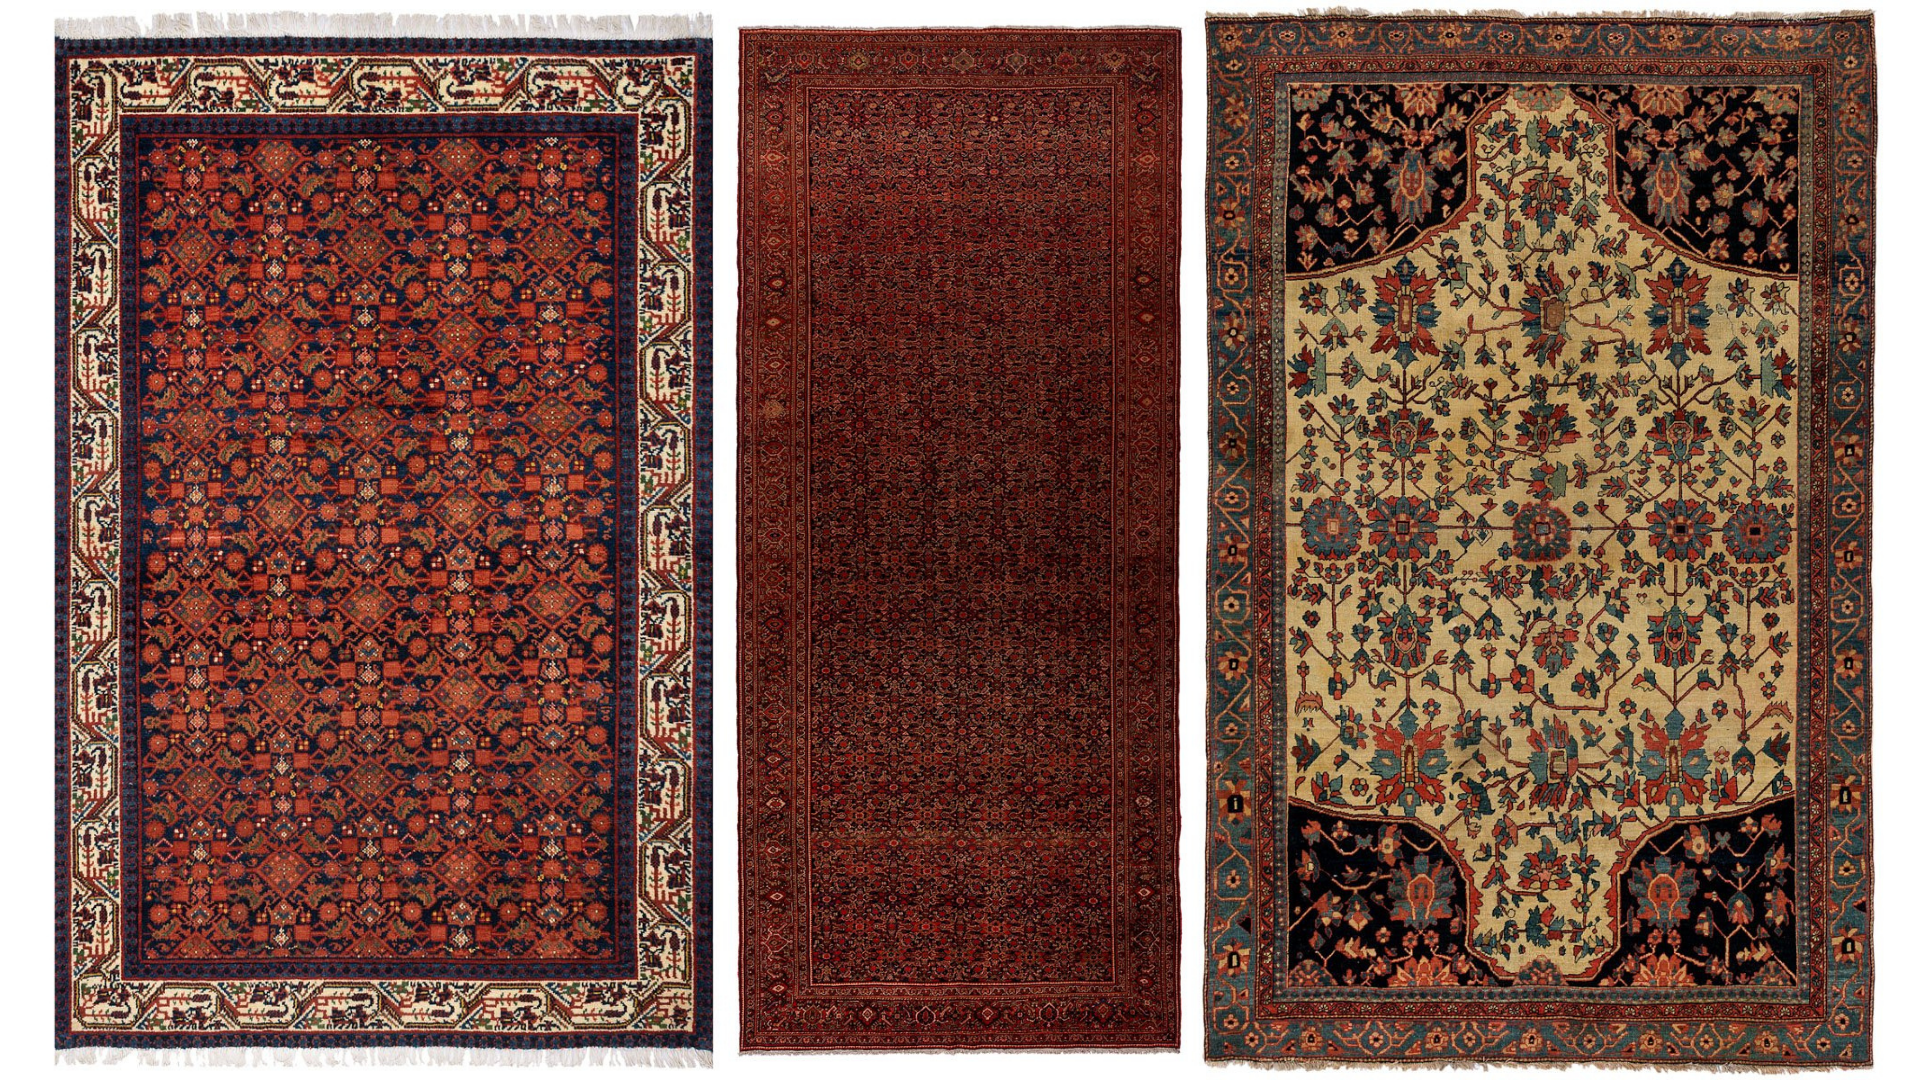 Image of three rugs including the LIVI Vintage Persian Malayer rug, the SEZAR Antique Persian Farahan Rug and the ARIKARA Antique Persian Farahan Rug